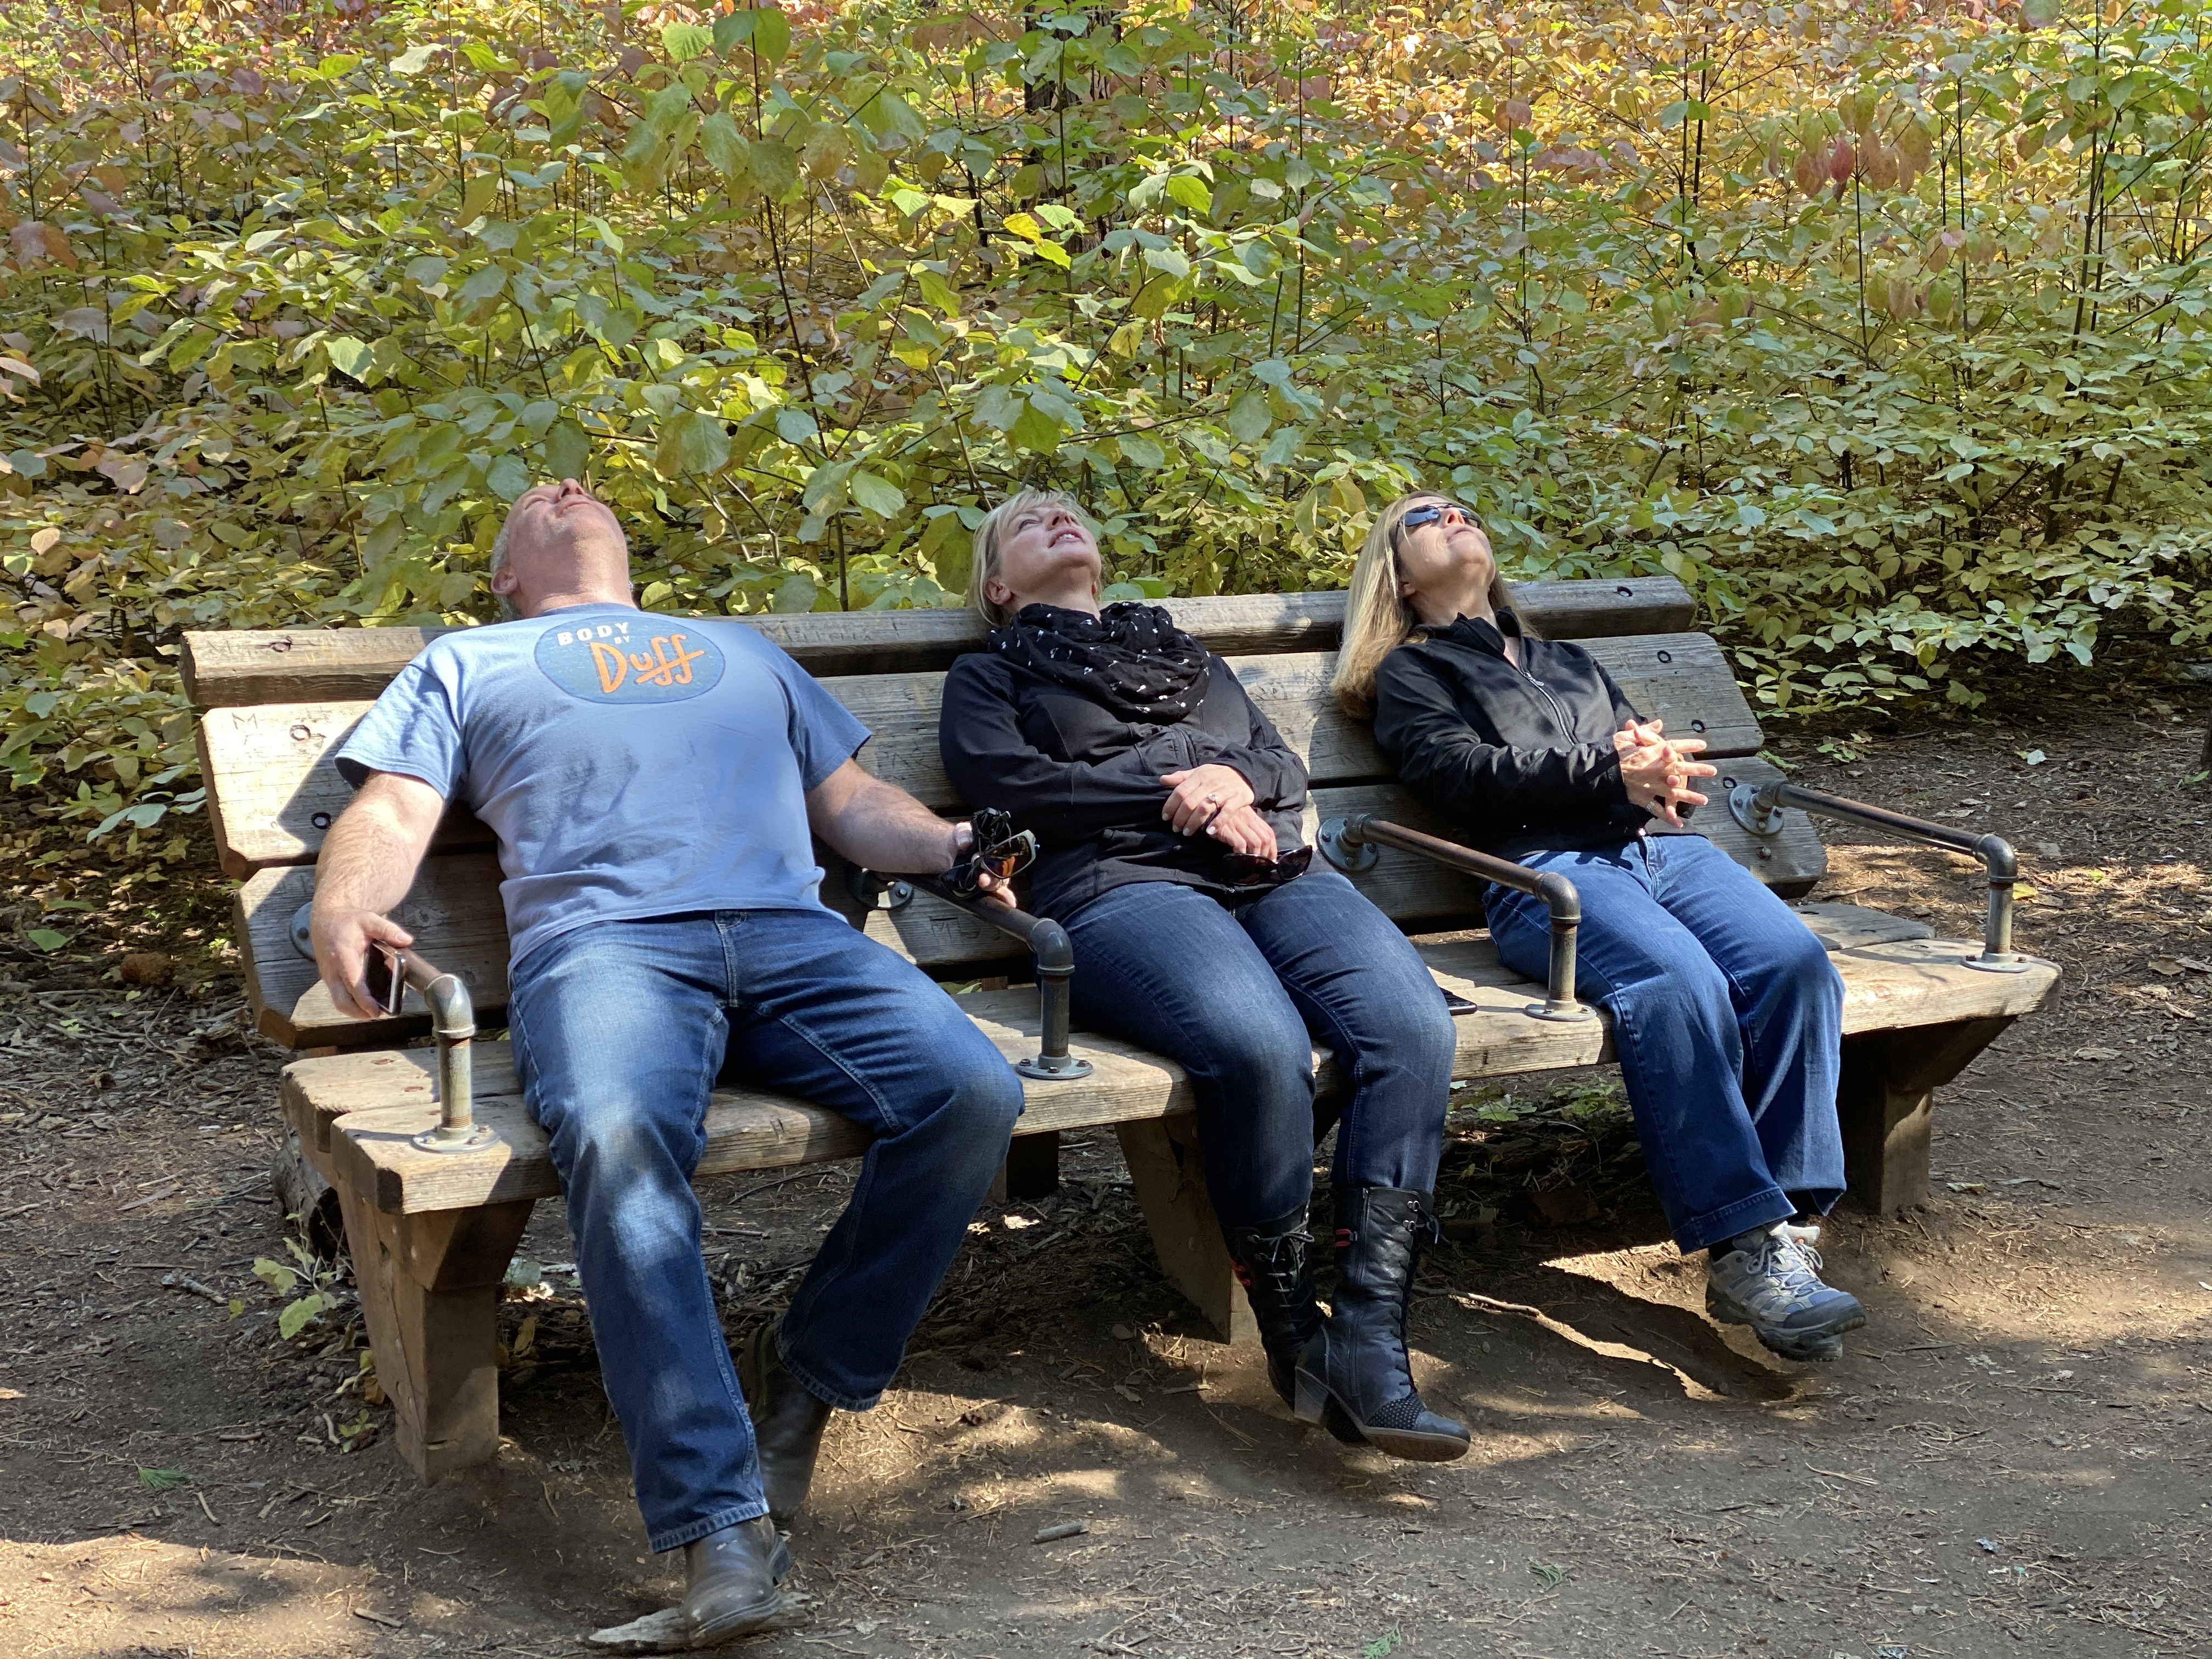 Tud, Ange, and Anne use the provided recliner to view the tall Sequoias.